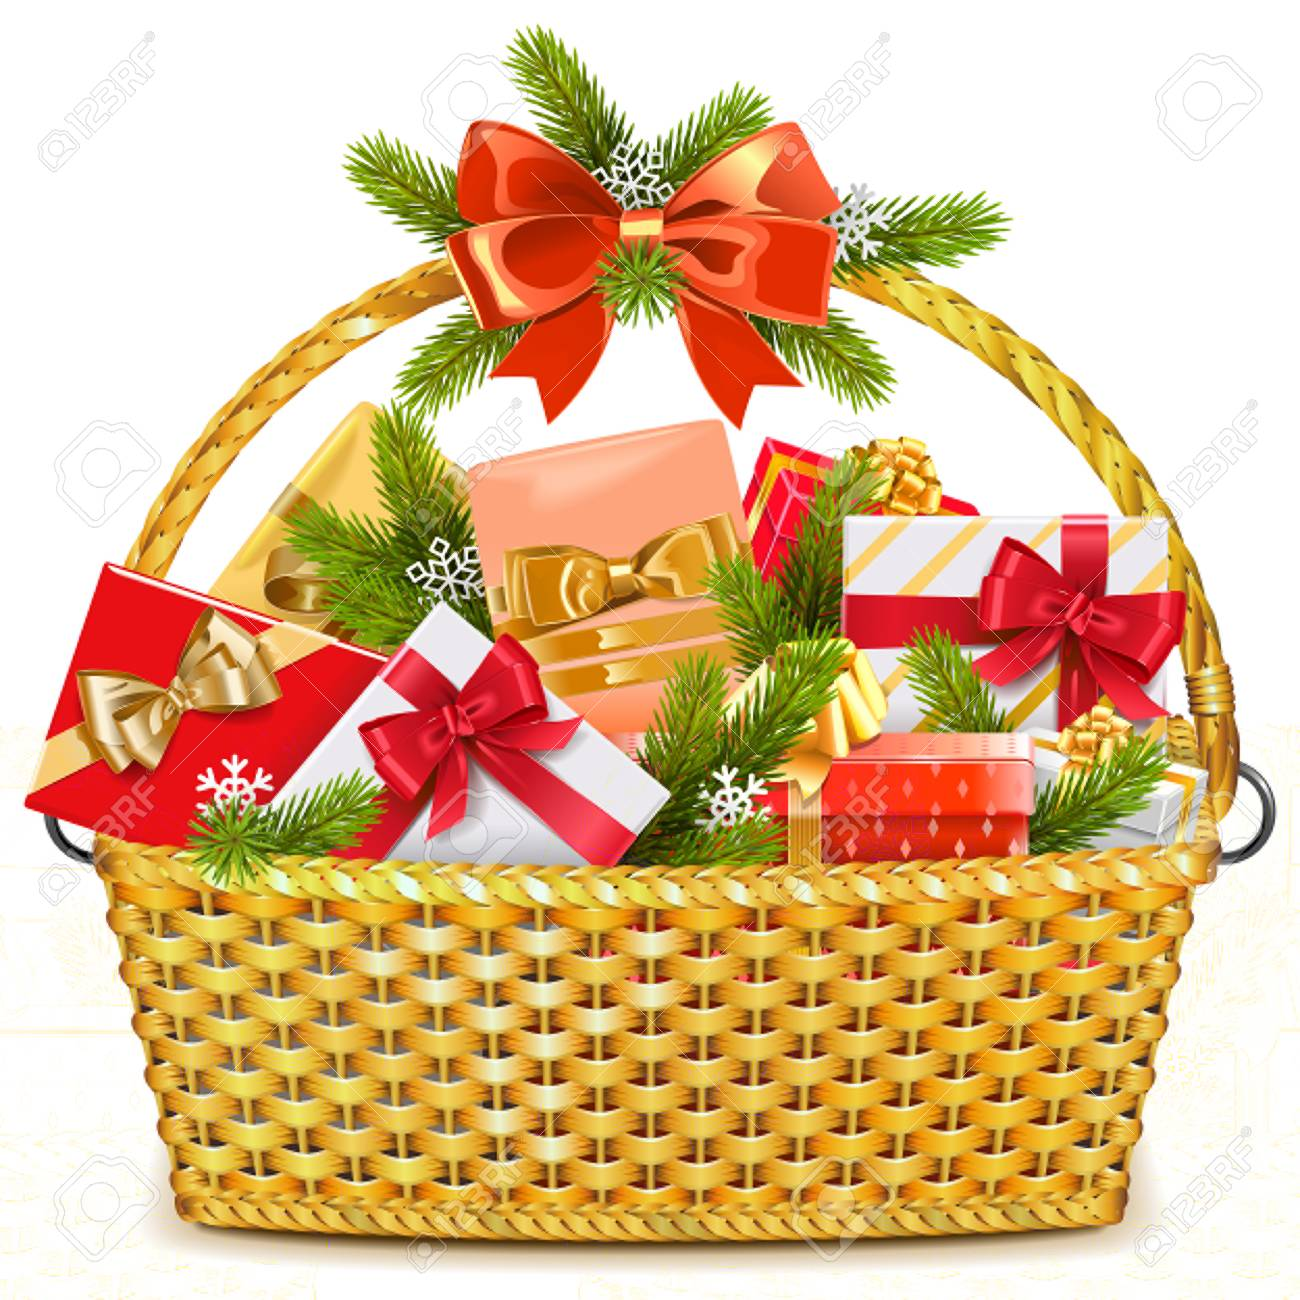 Vector Basket with Christmas Gifts isolated on white background.